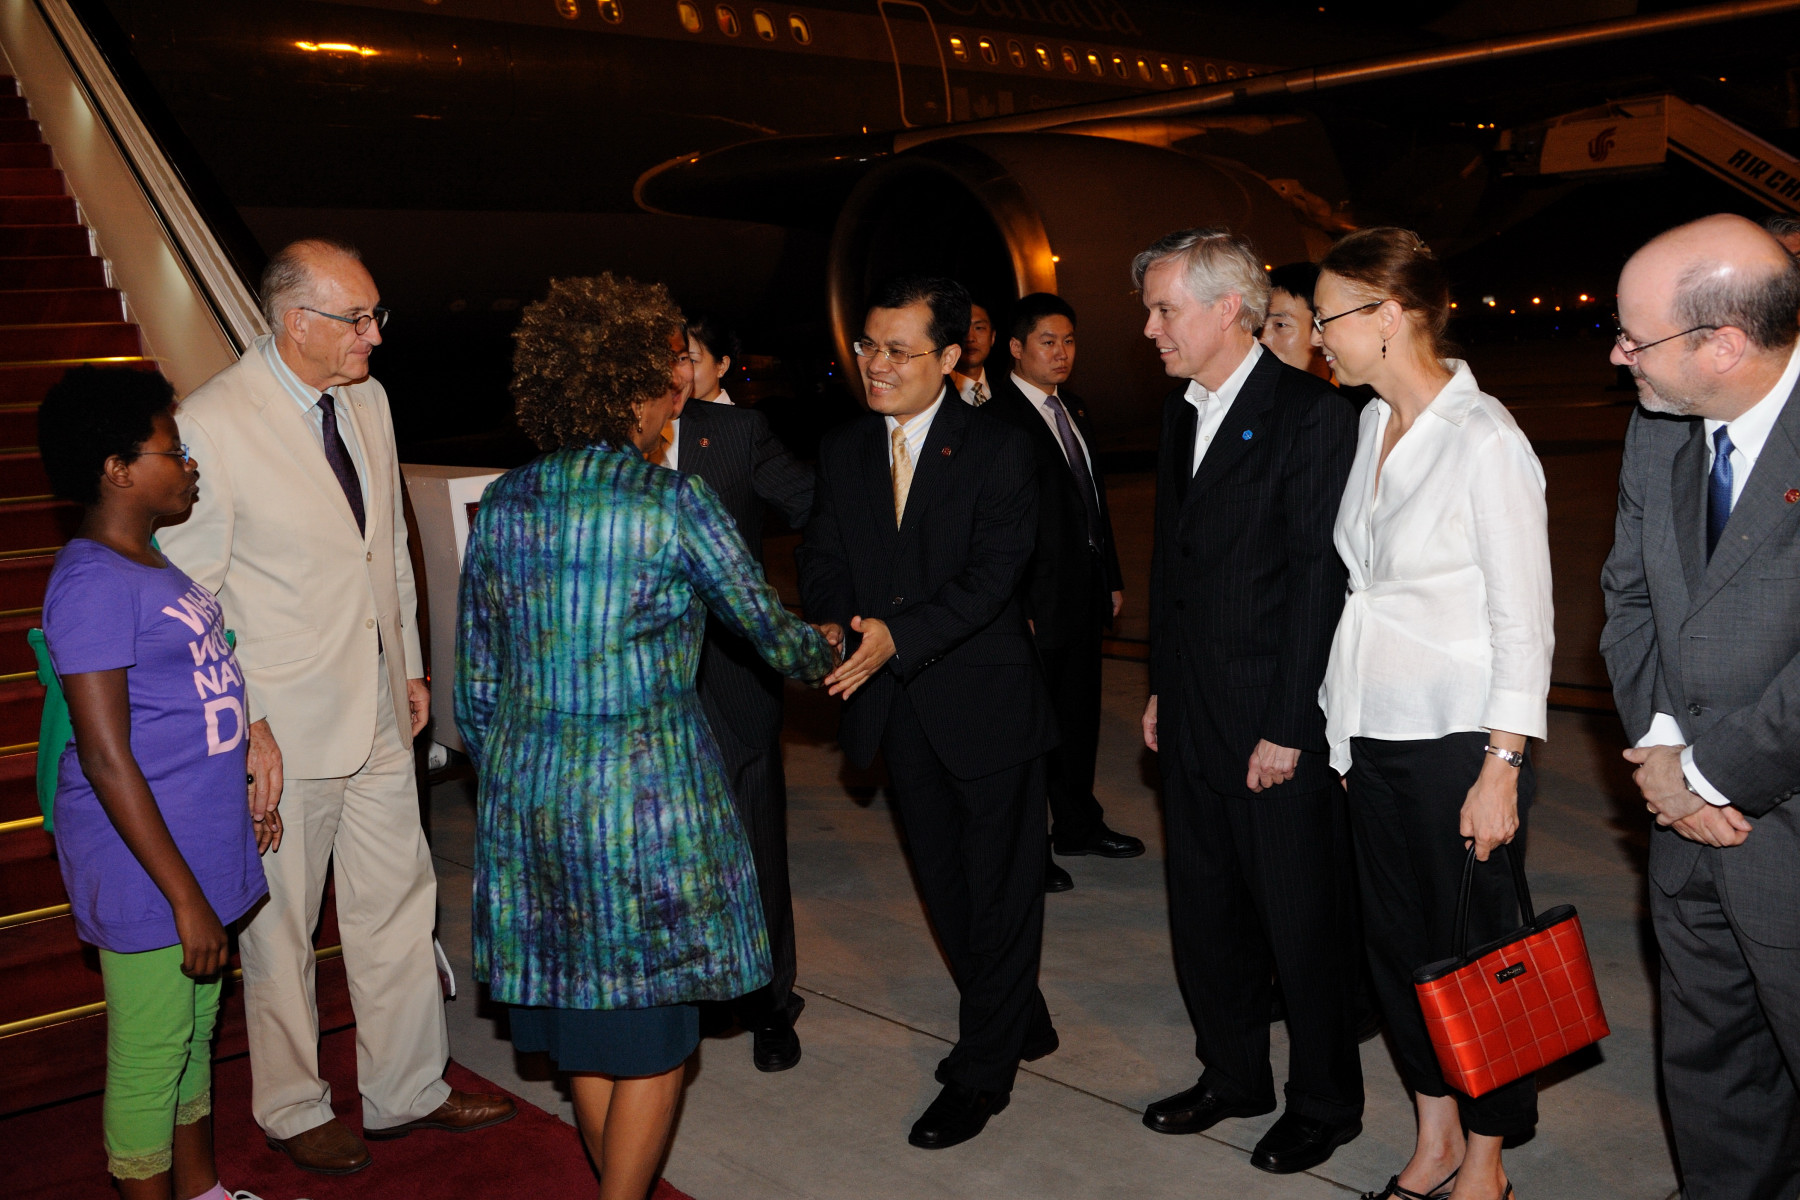 Upon their arrival in Beijing, Their Excellencies accompanied by Marie-Éden and the Canadian delegation were greeted by Chinese Government Officials.